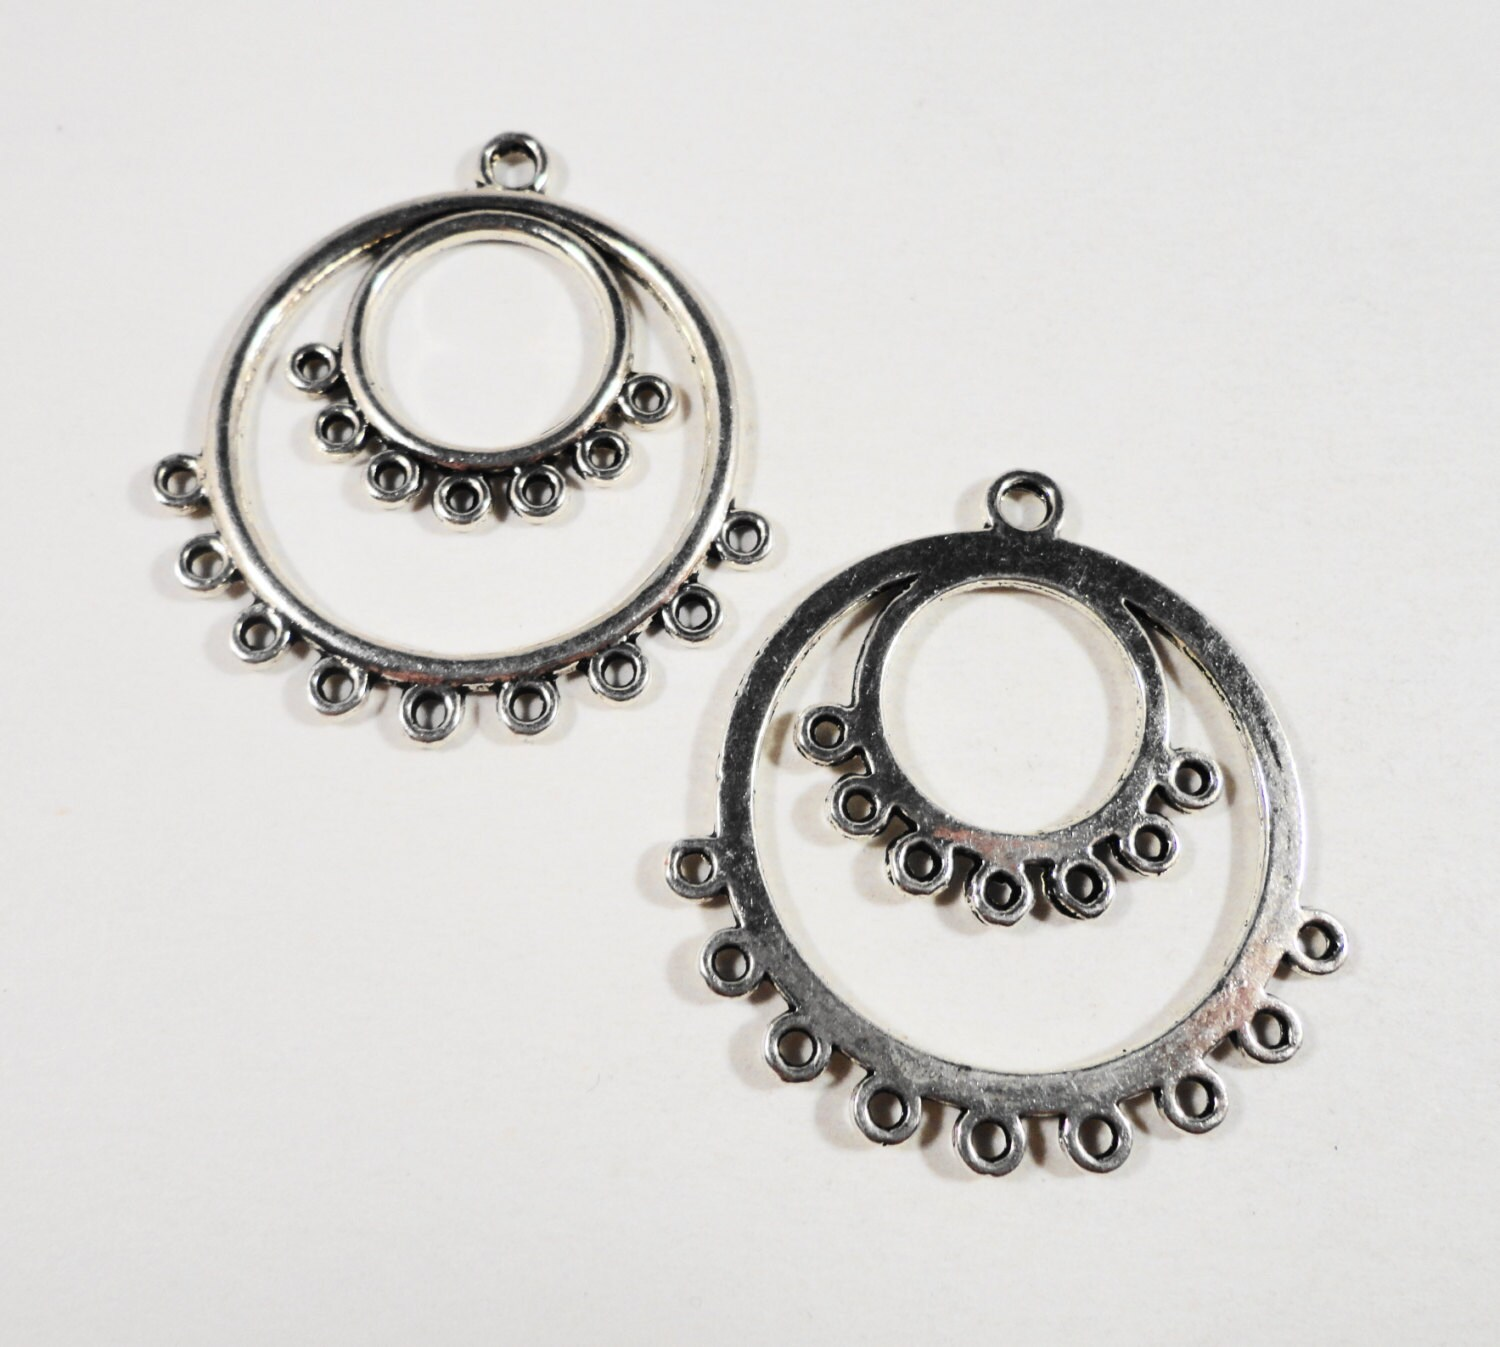 Hoop earring connectors 36x34mm antique silver chandelier earring hoop earring connectors 36x34mm antique silver chandelier earring findings connector findings connector pendants jewelry findings arubaitofo Image collections